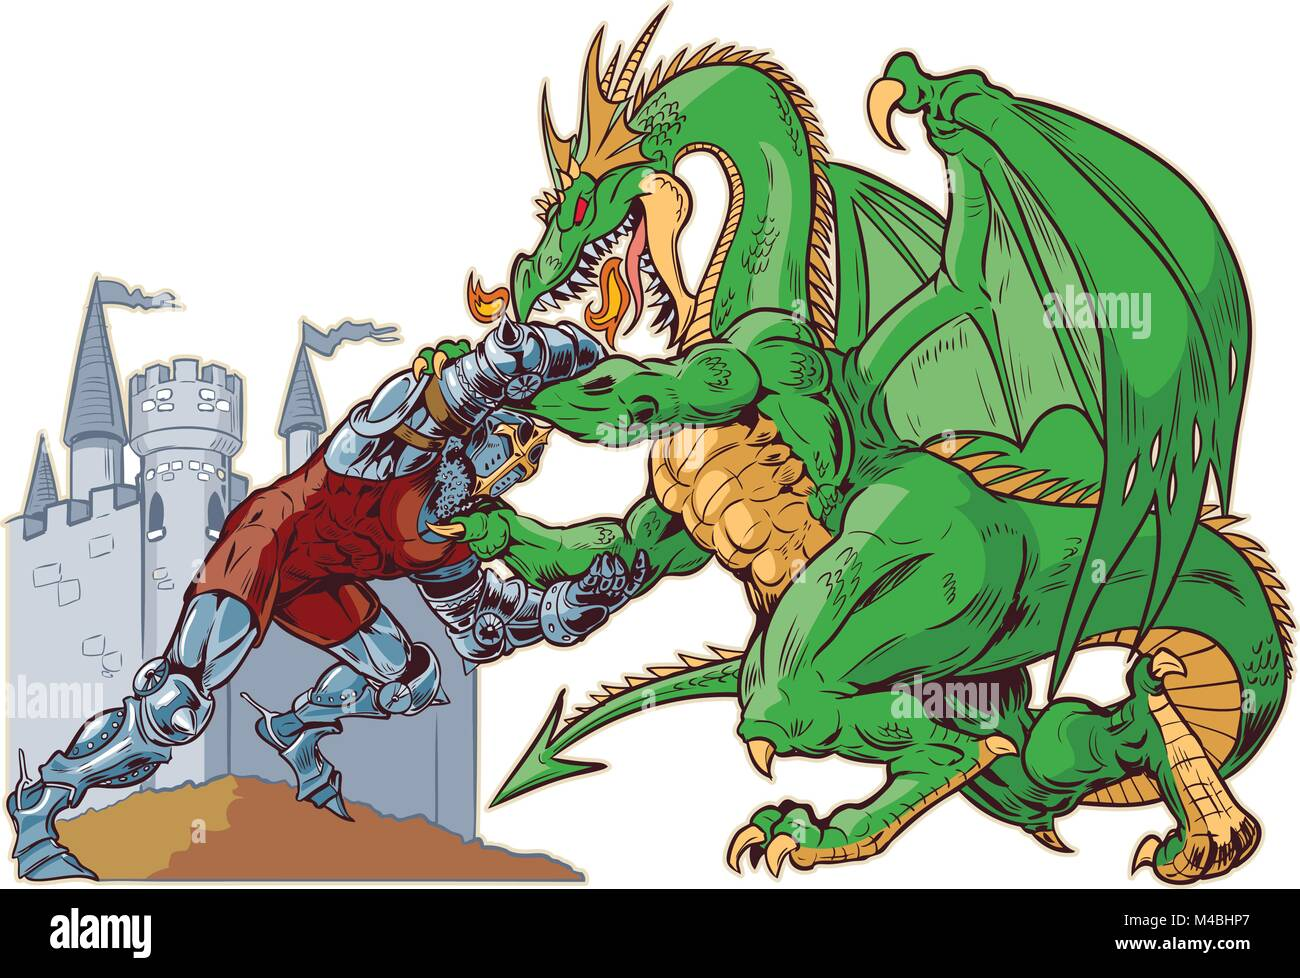 Vector cartoon clip art illustration of a muscular knight mascot wrestling with a tough mean dragon on a castle - Stock Image